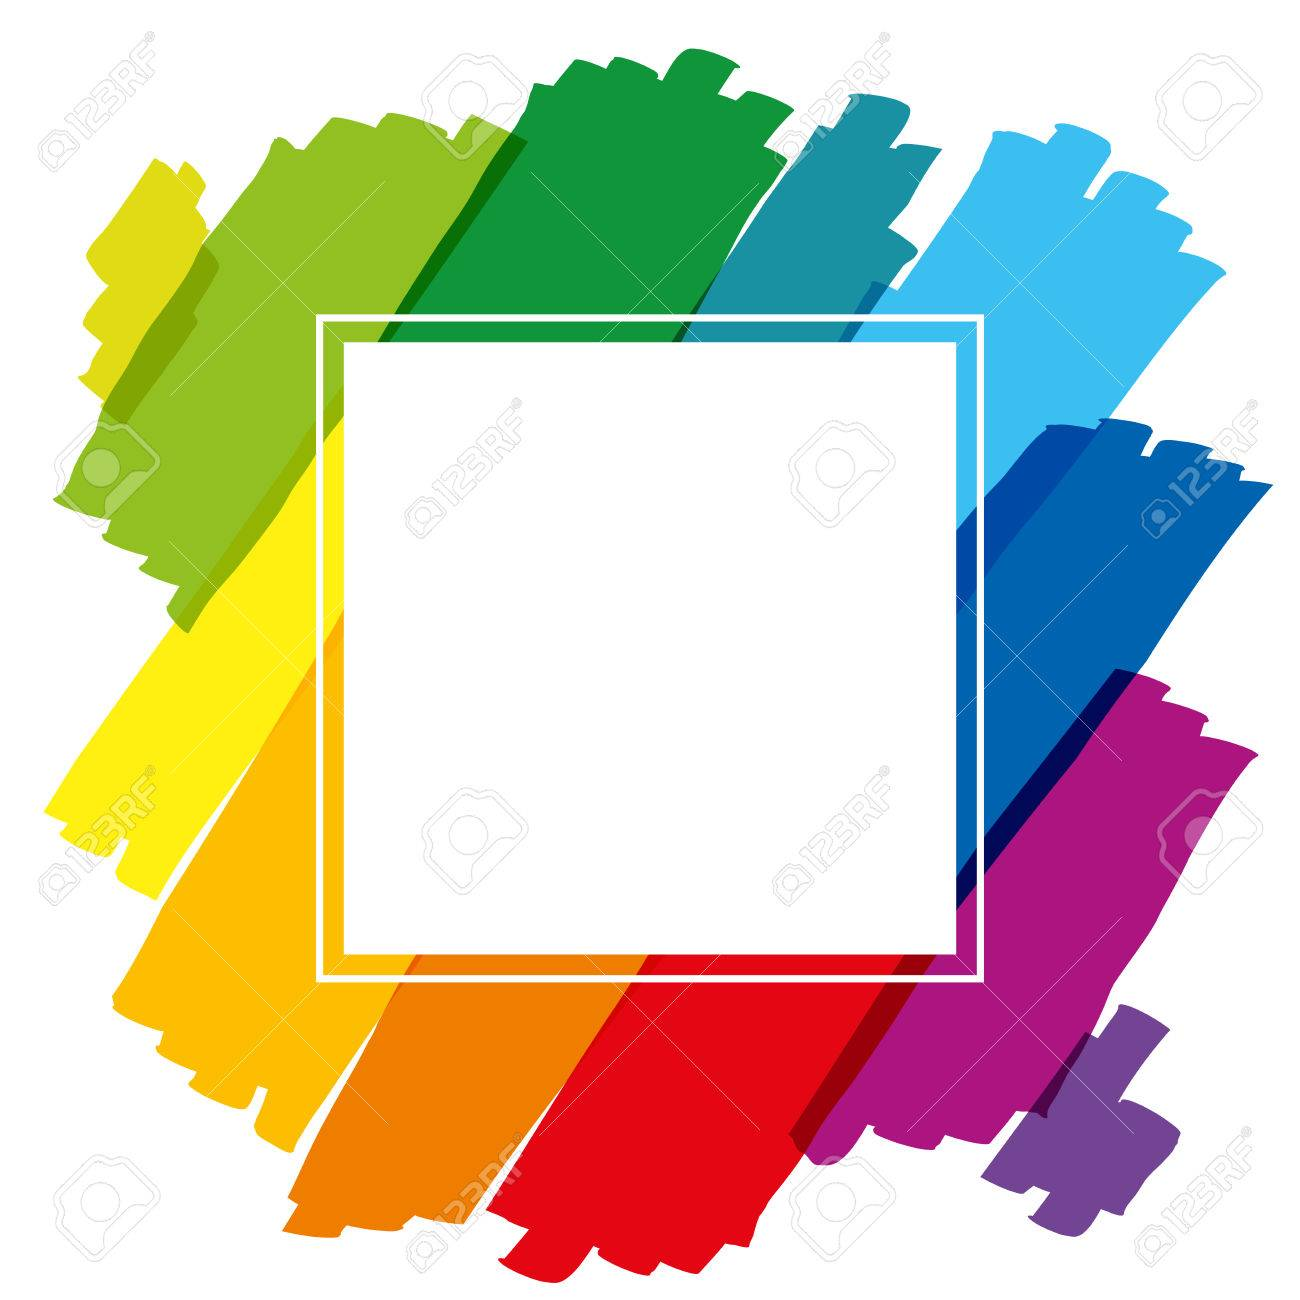 Rainbow Colored Brush Strokes Forming A Colorful Square Frame